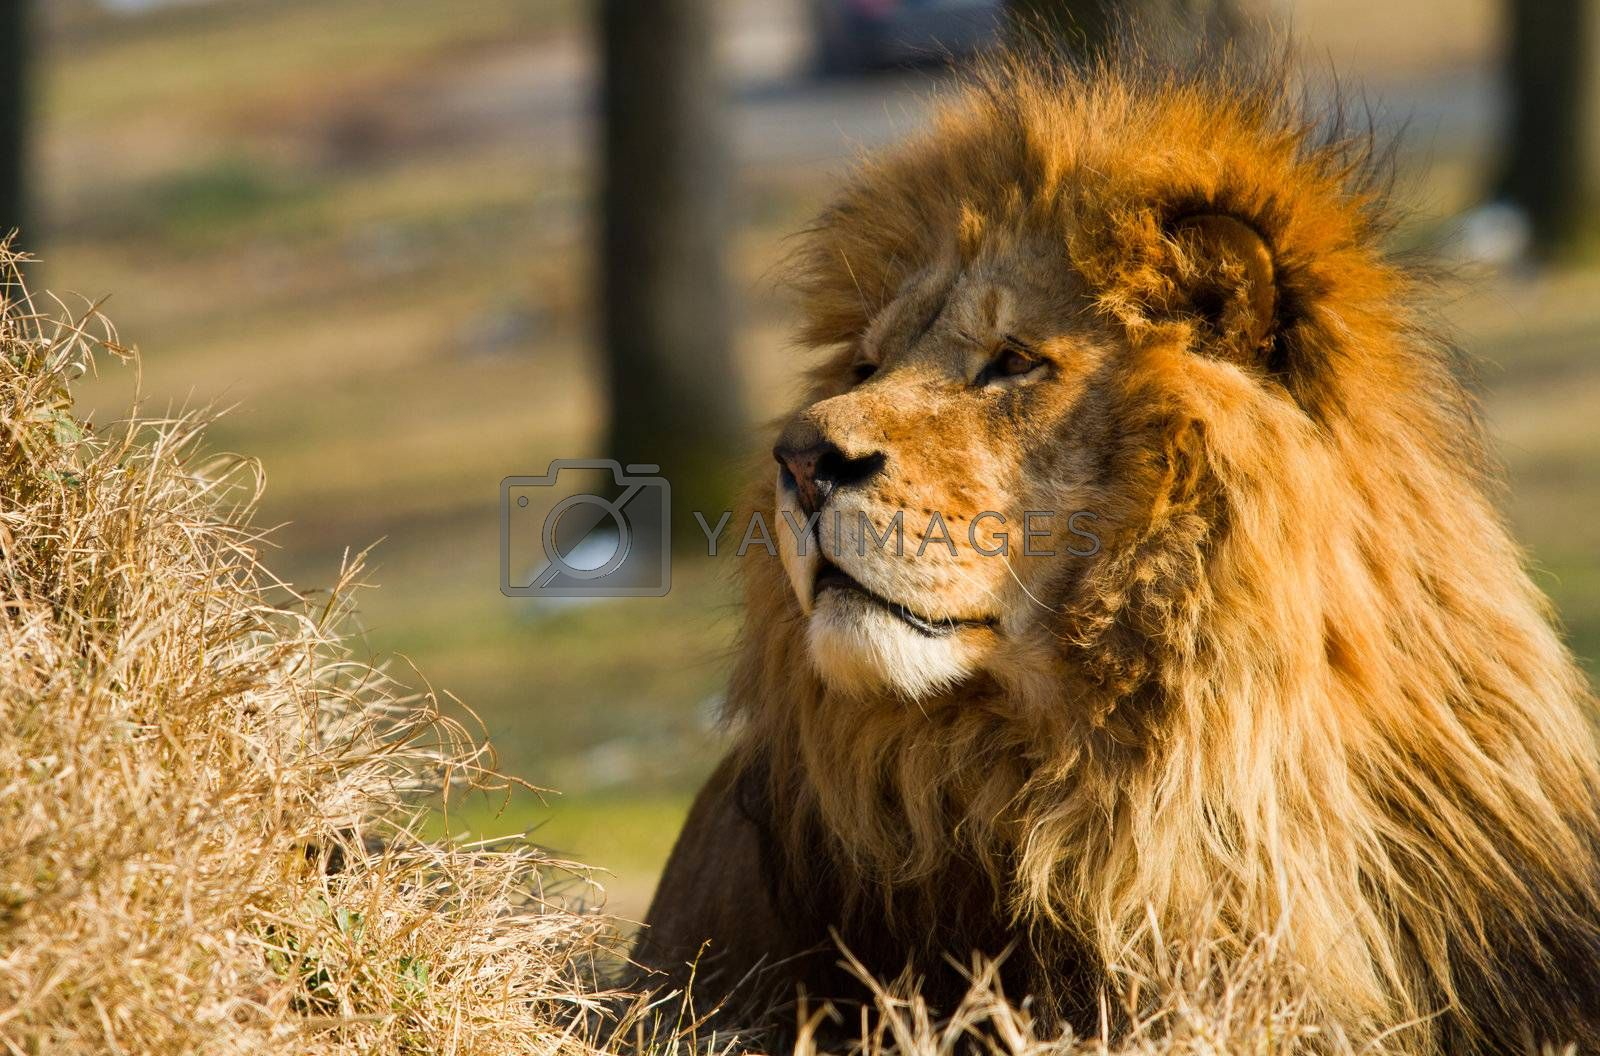 Royalty free image of Lion the king by lsantilli